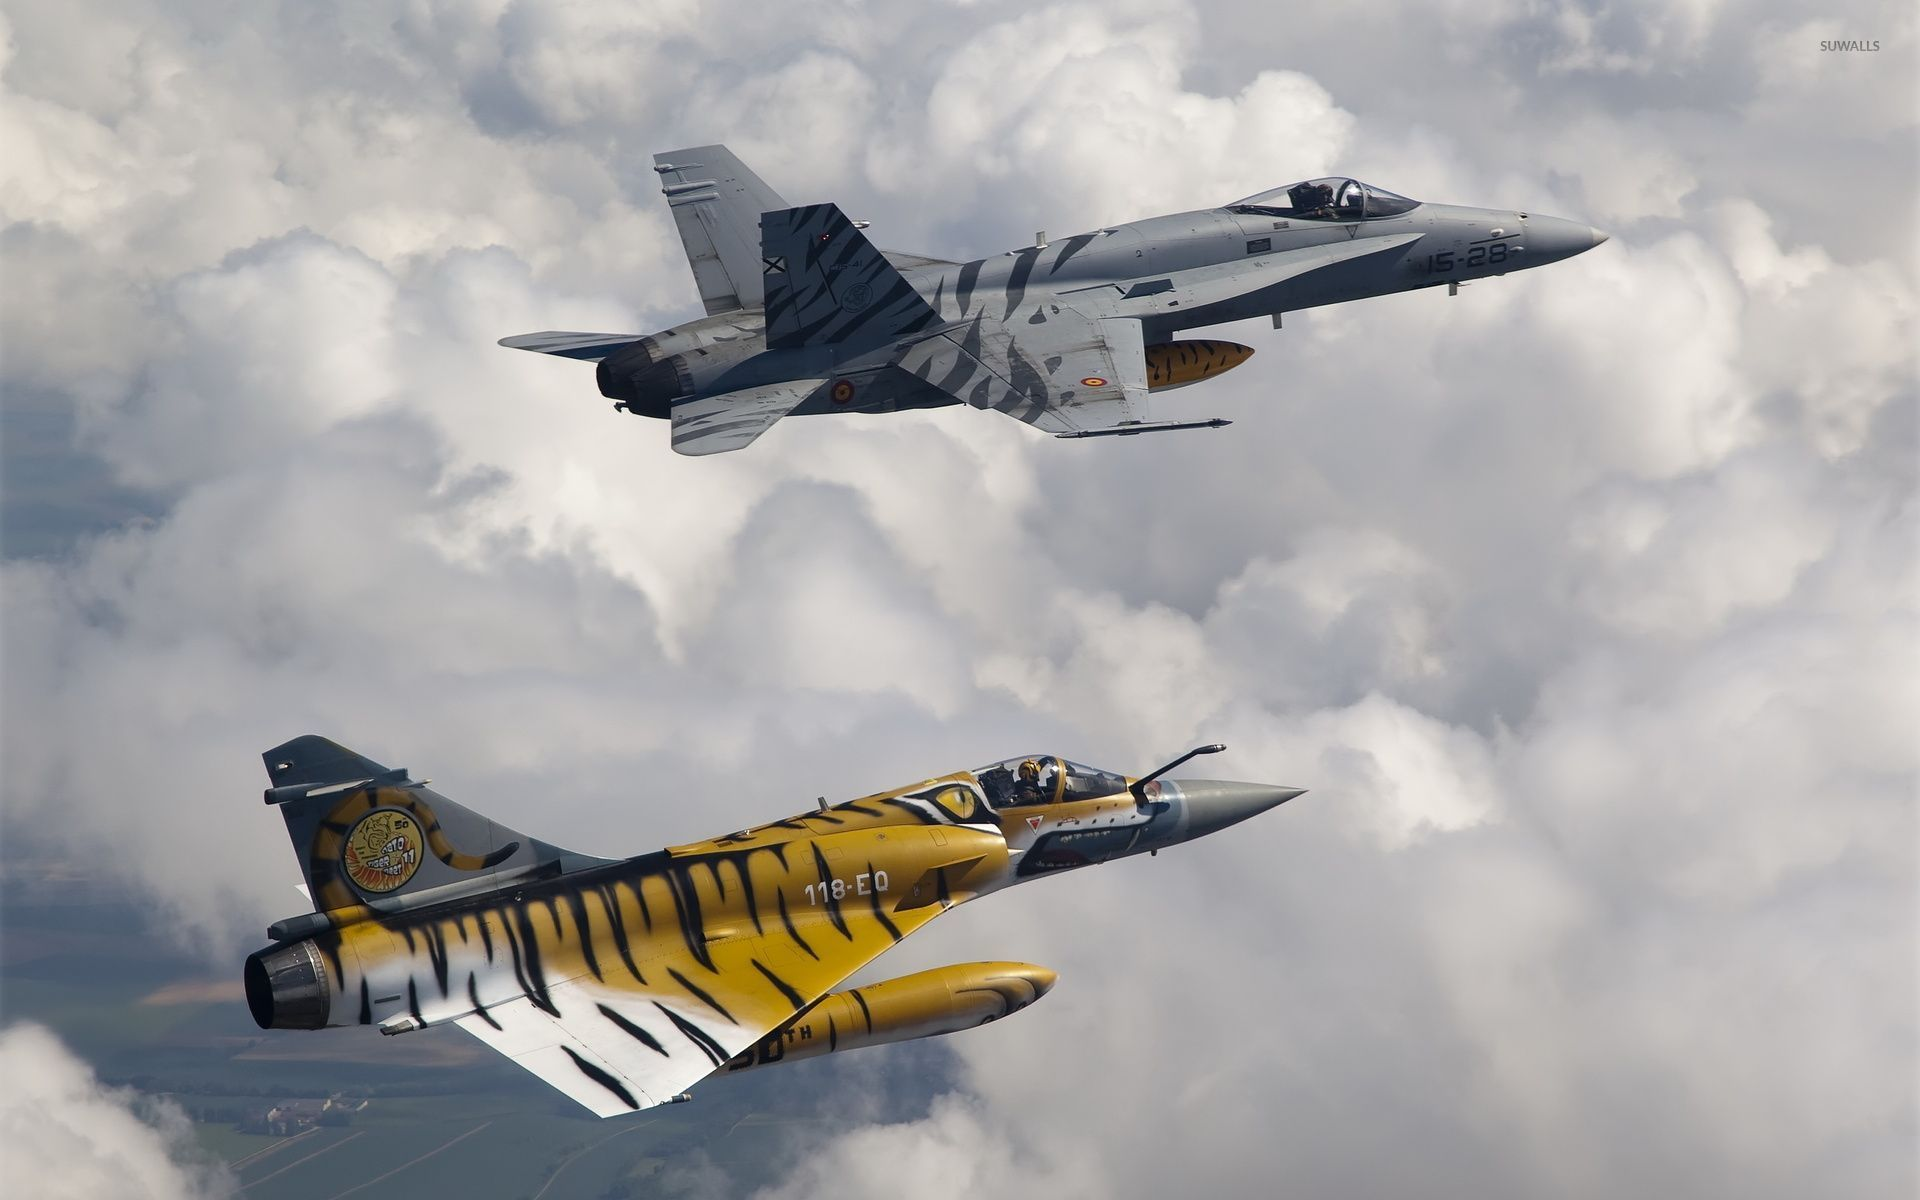 F 18 And Mirage Wallpaper Aircraft Wallpapers 8985